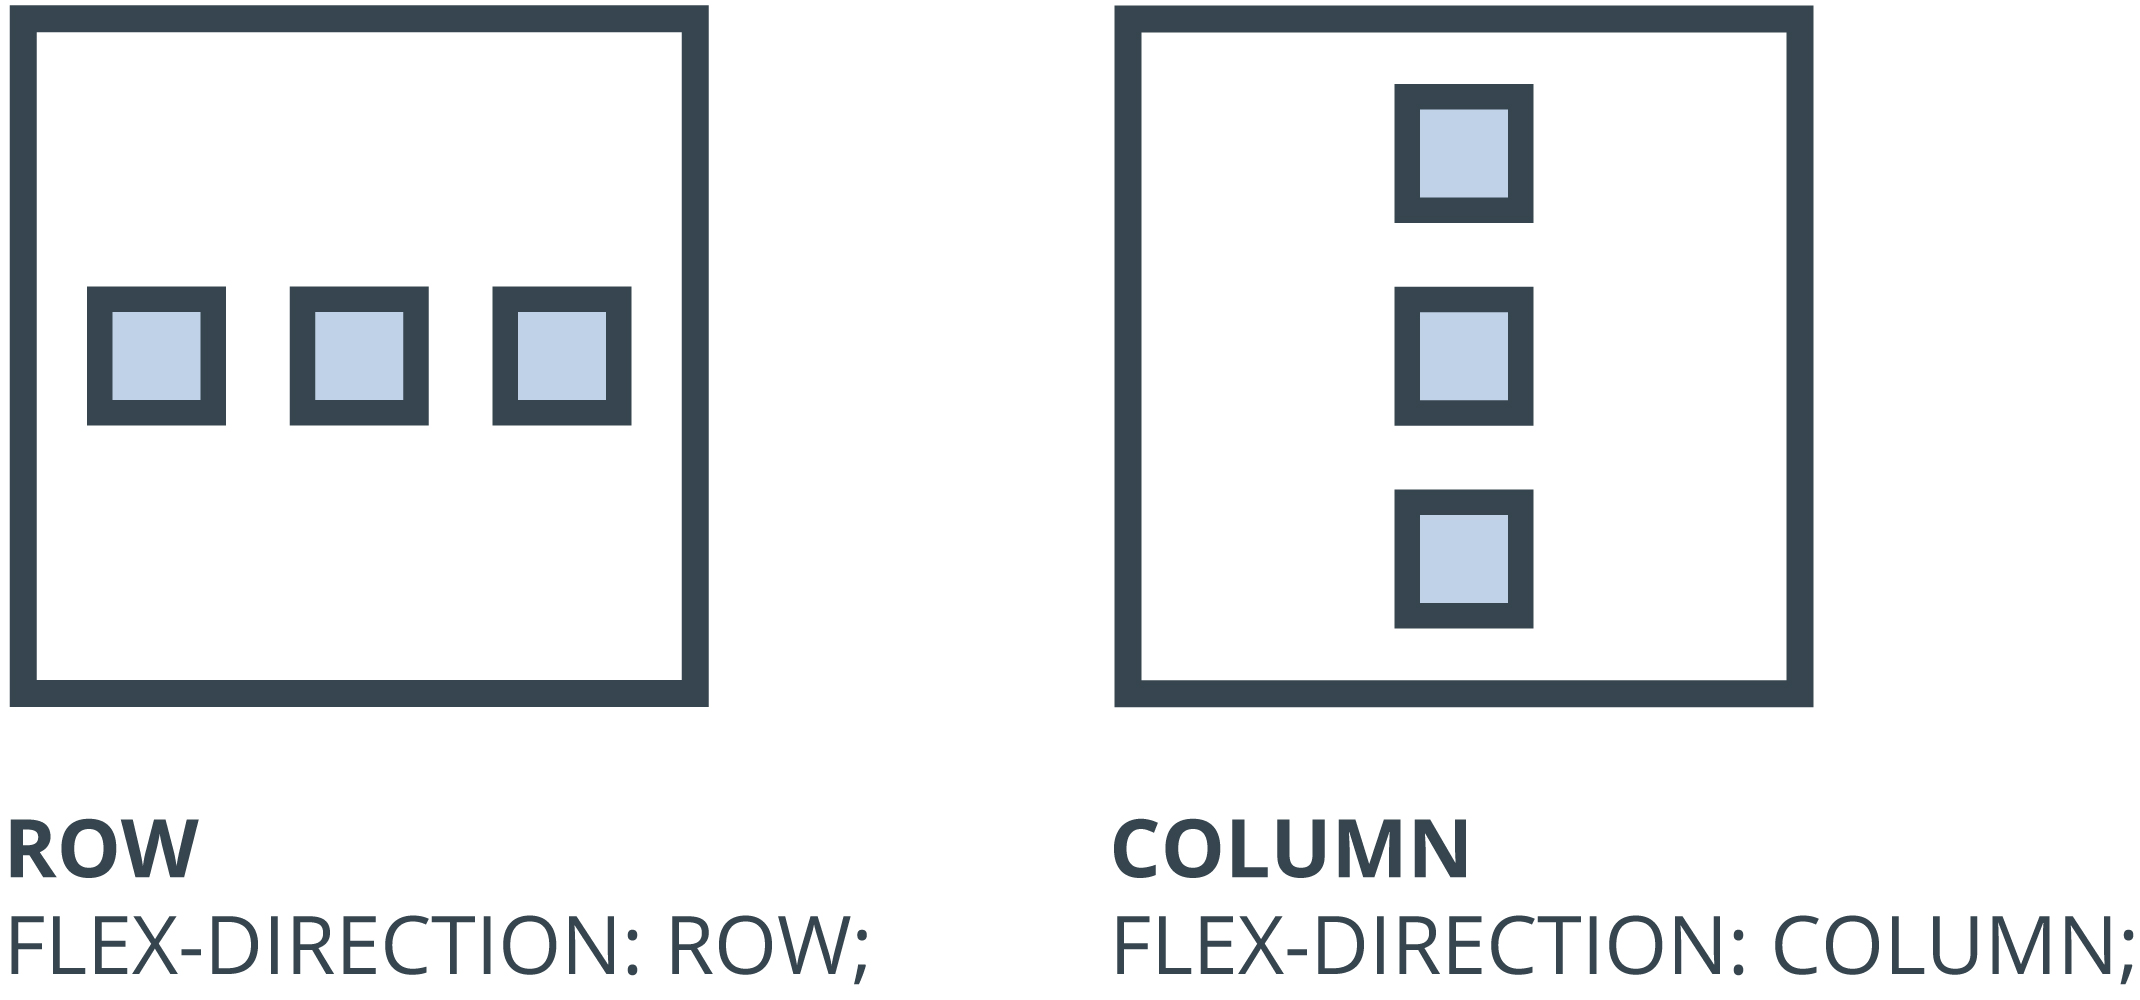 Redesigning a Website Using CSS Grid and Flexbox - DZone Web Dev